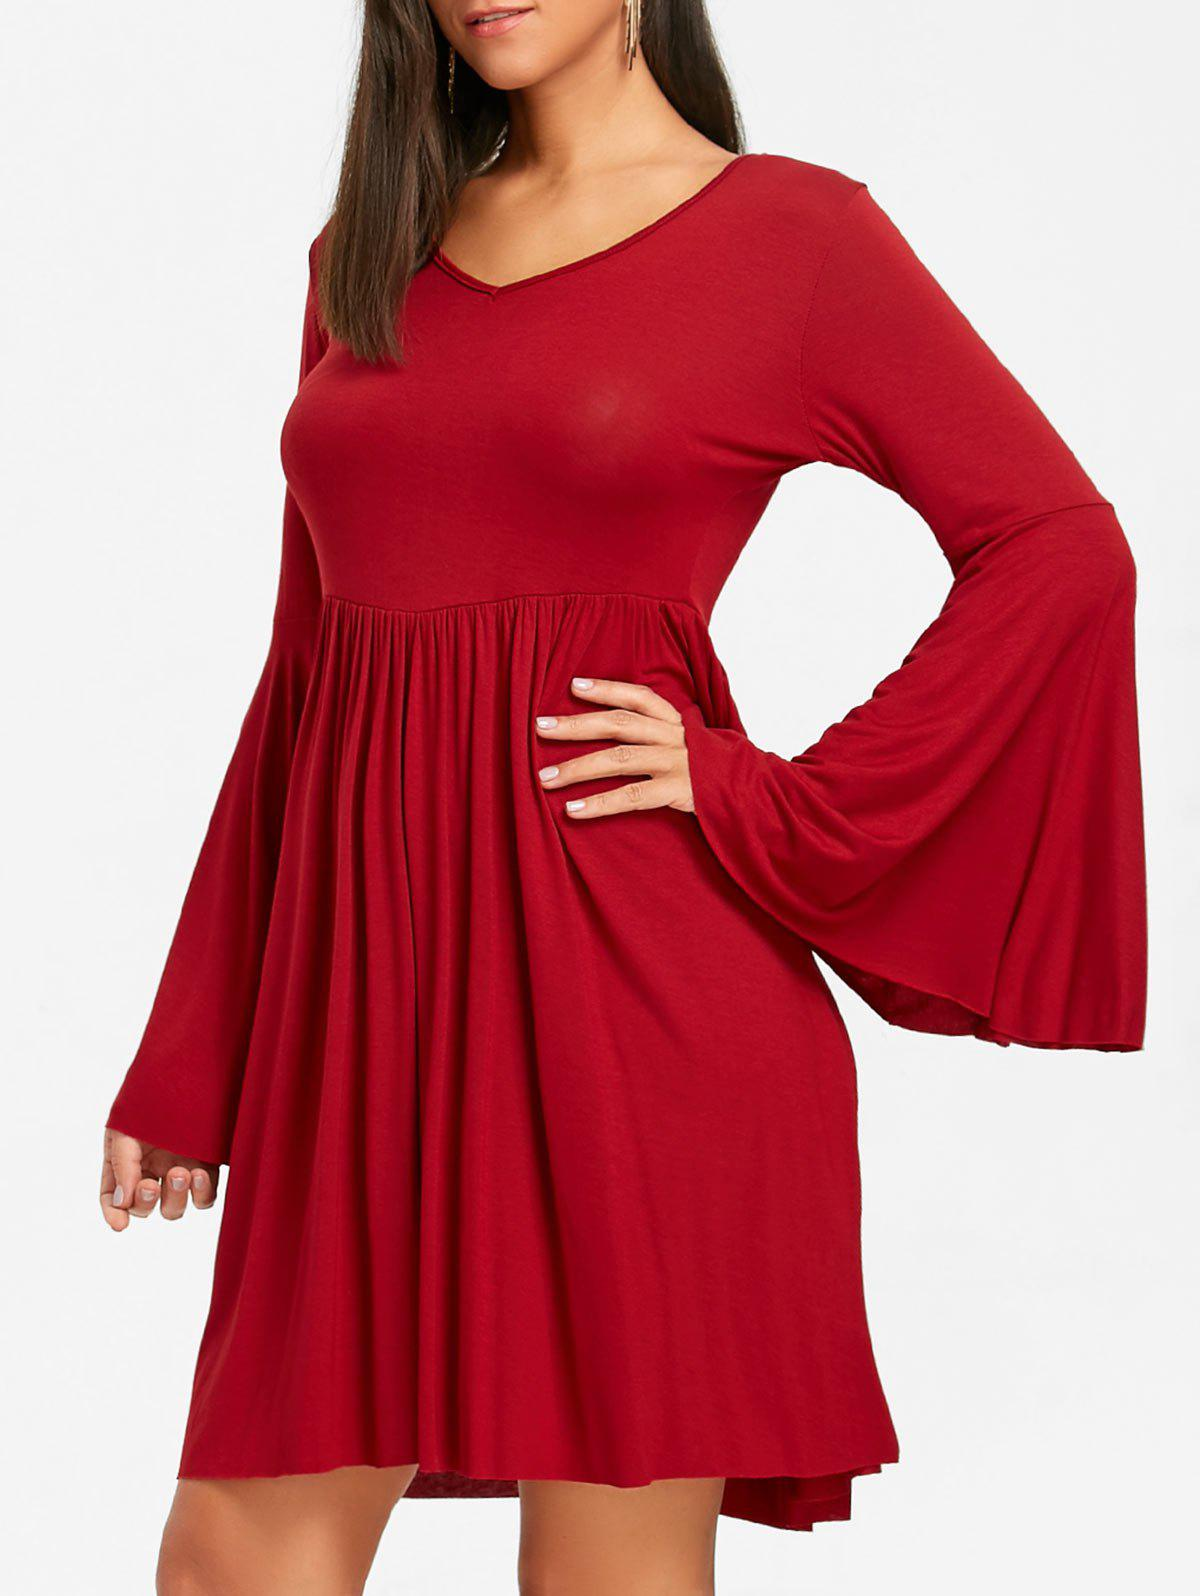 Cut Out Bell Sleeve Swing Mini Dress - RED 2XL